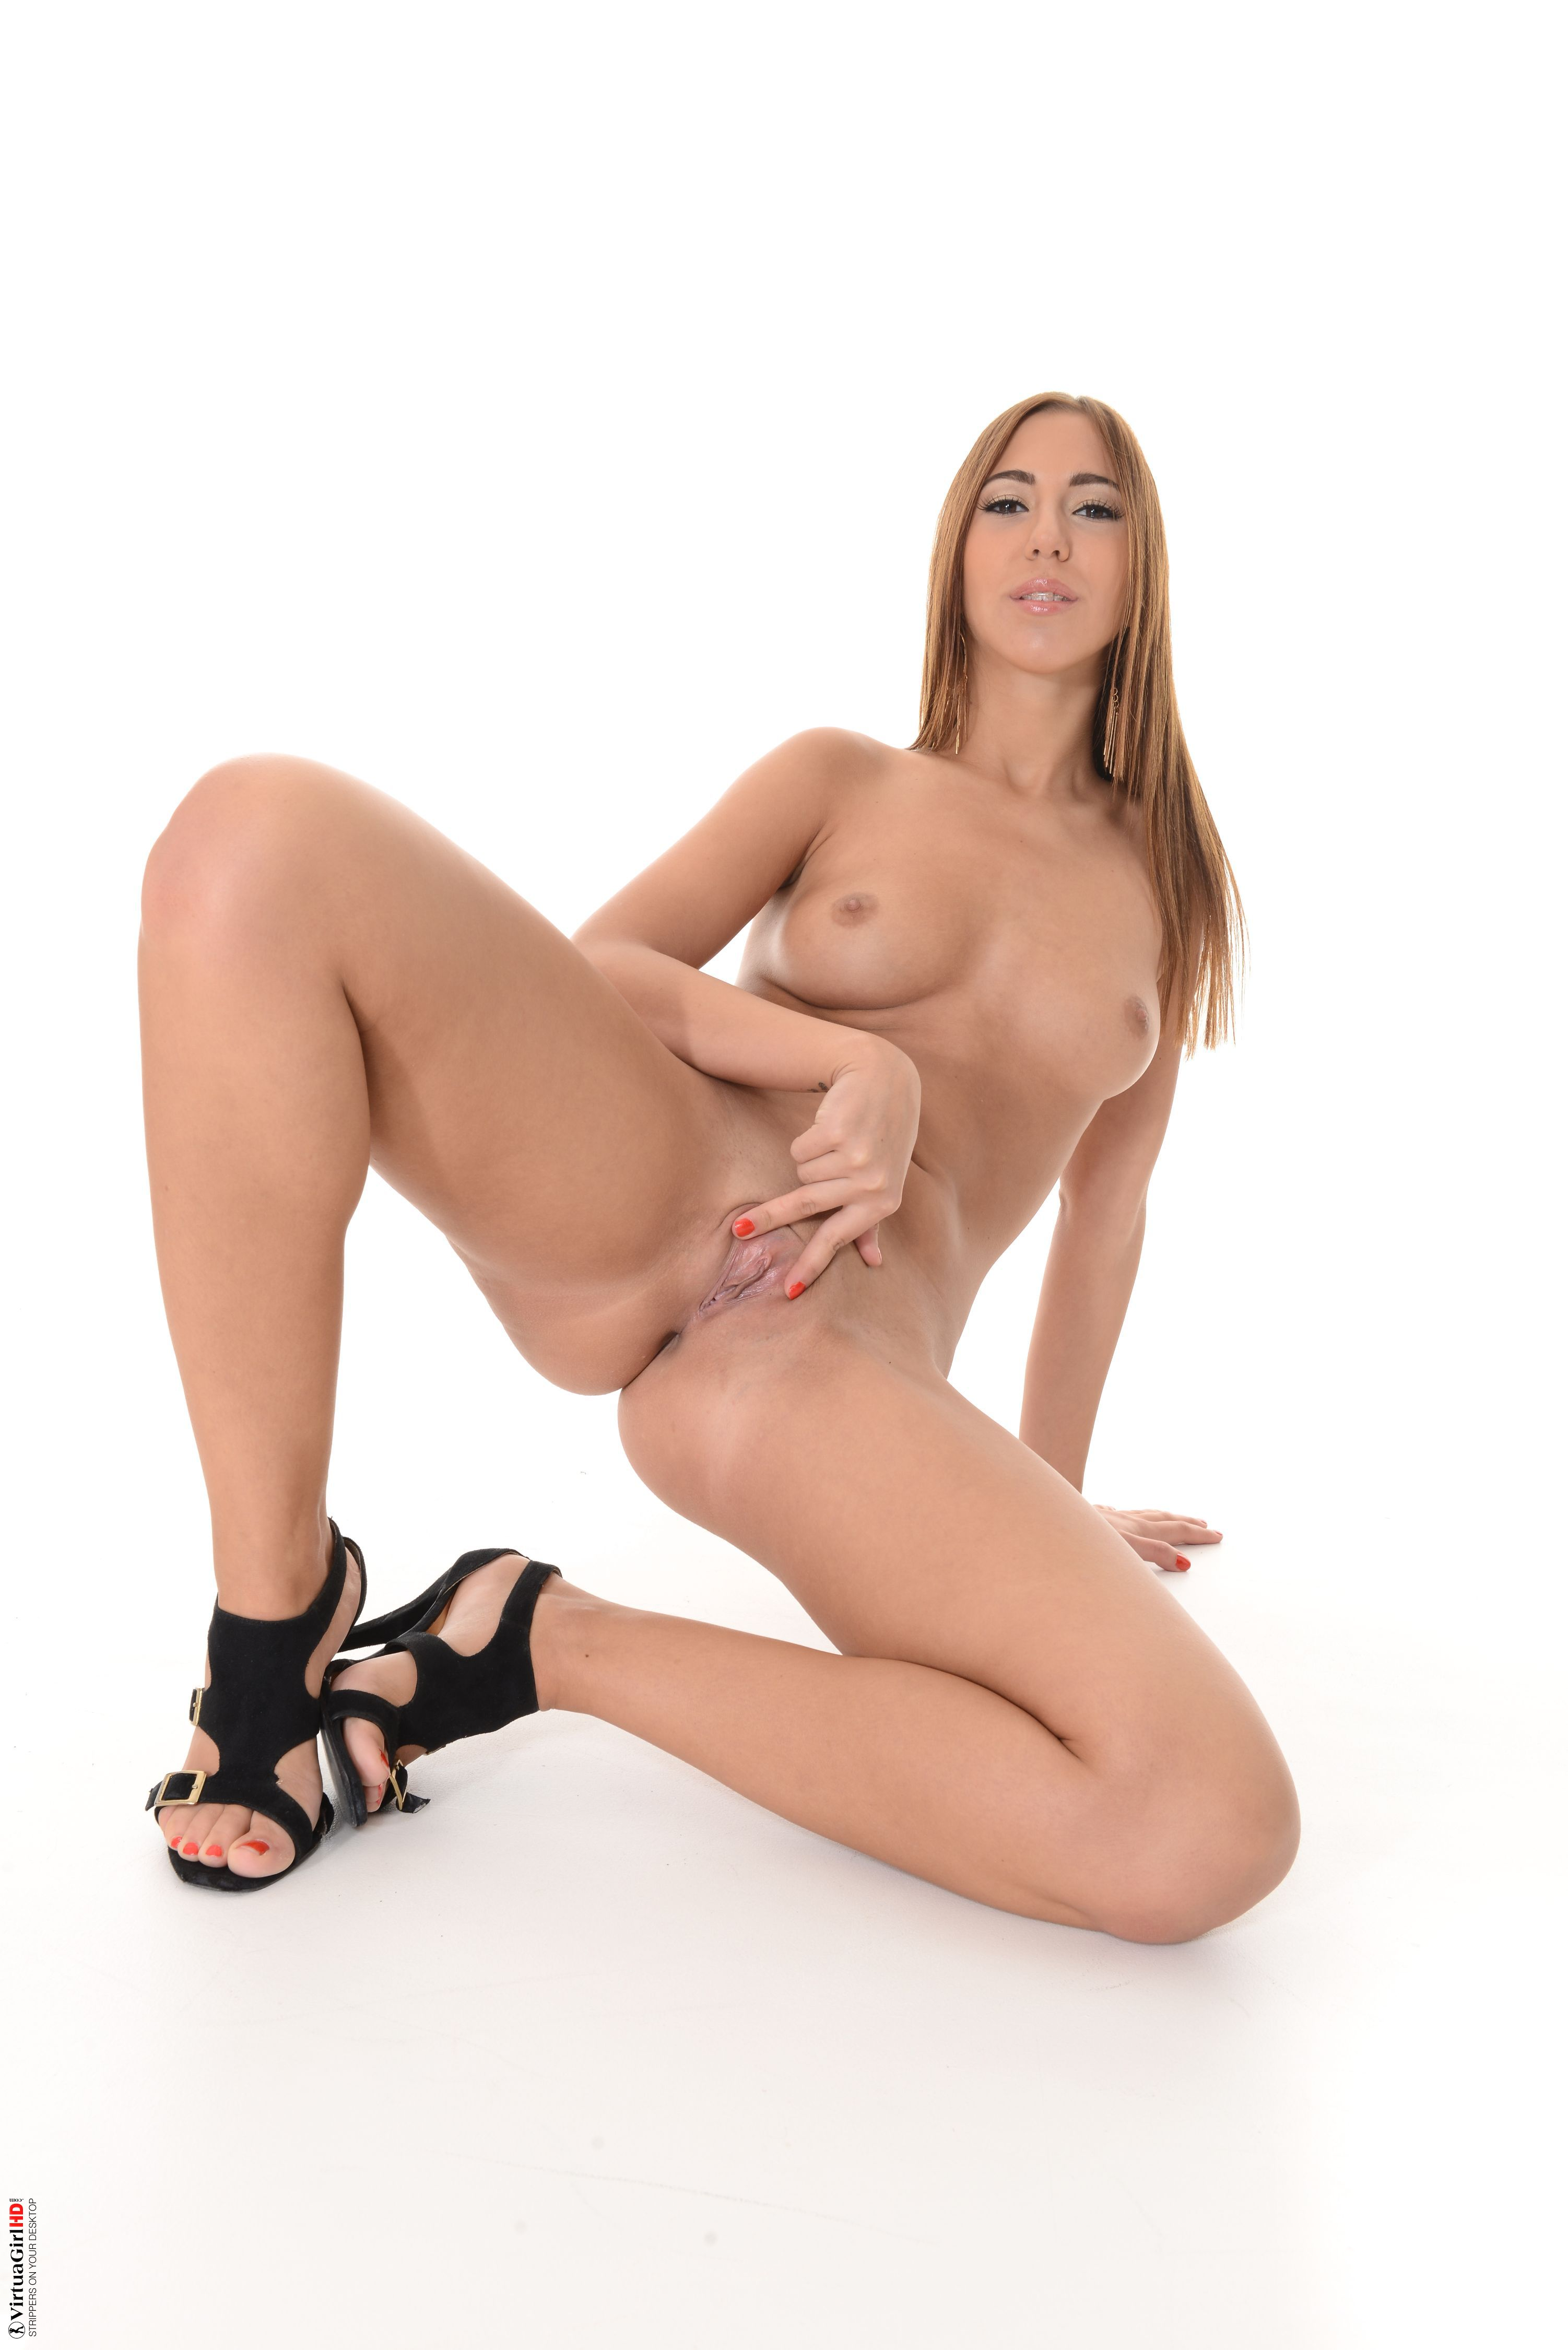 shaved cunt gallery